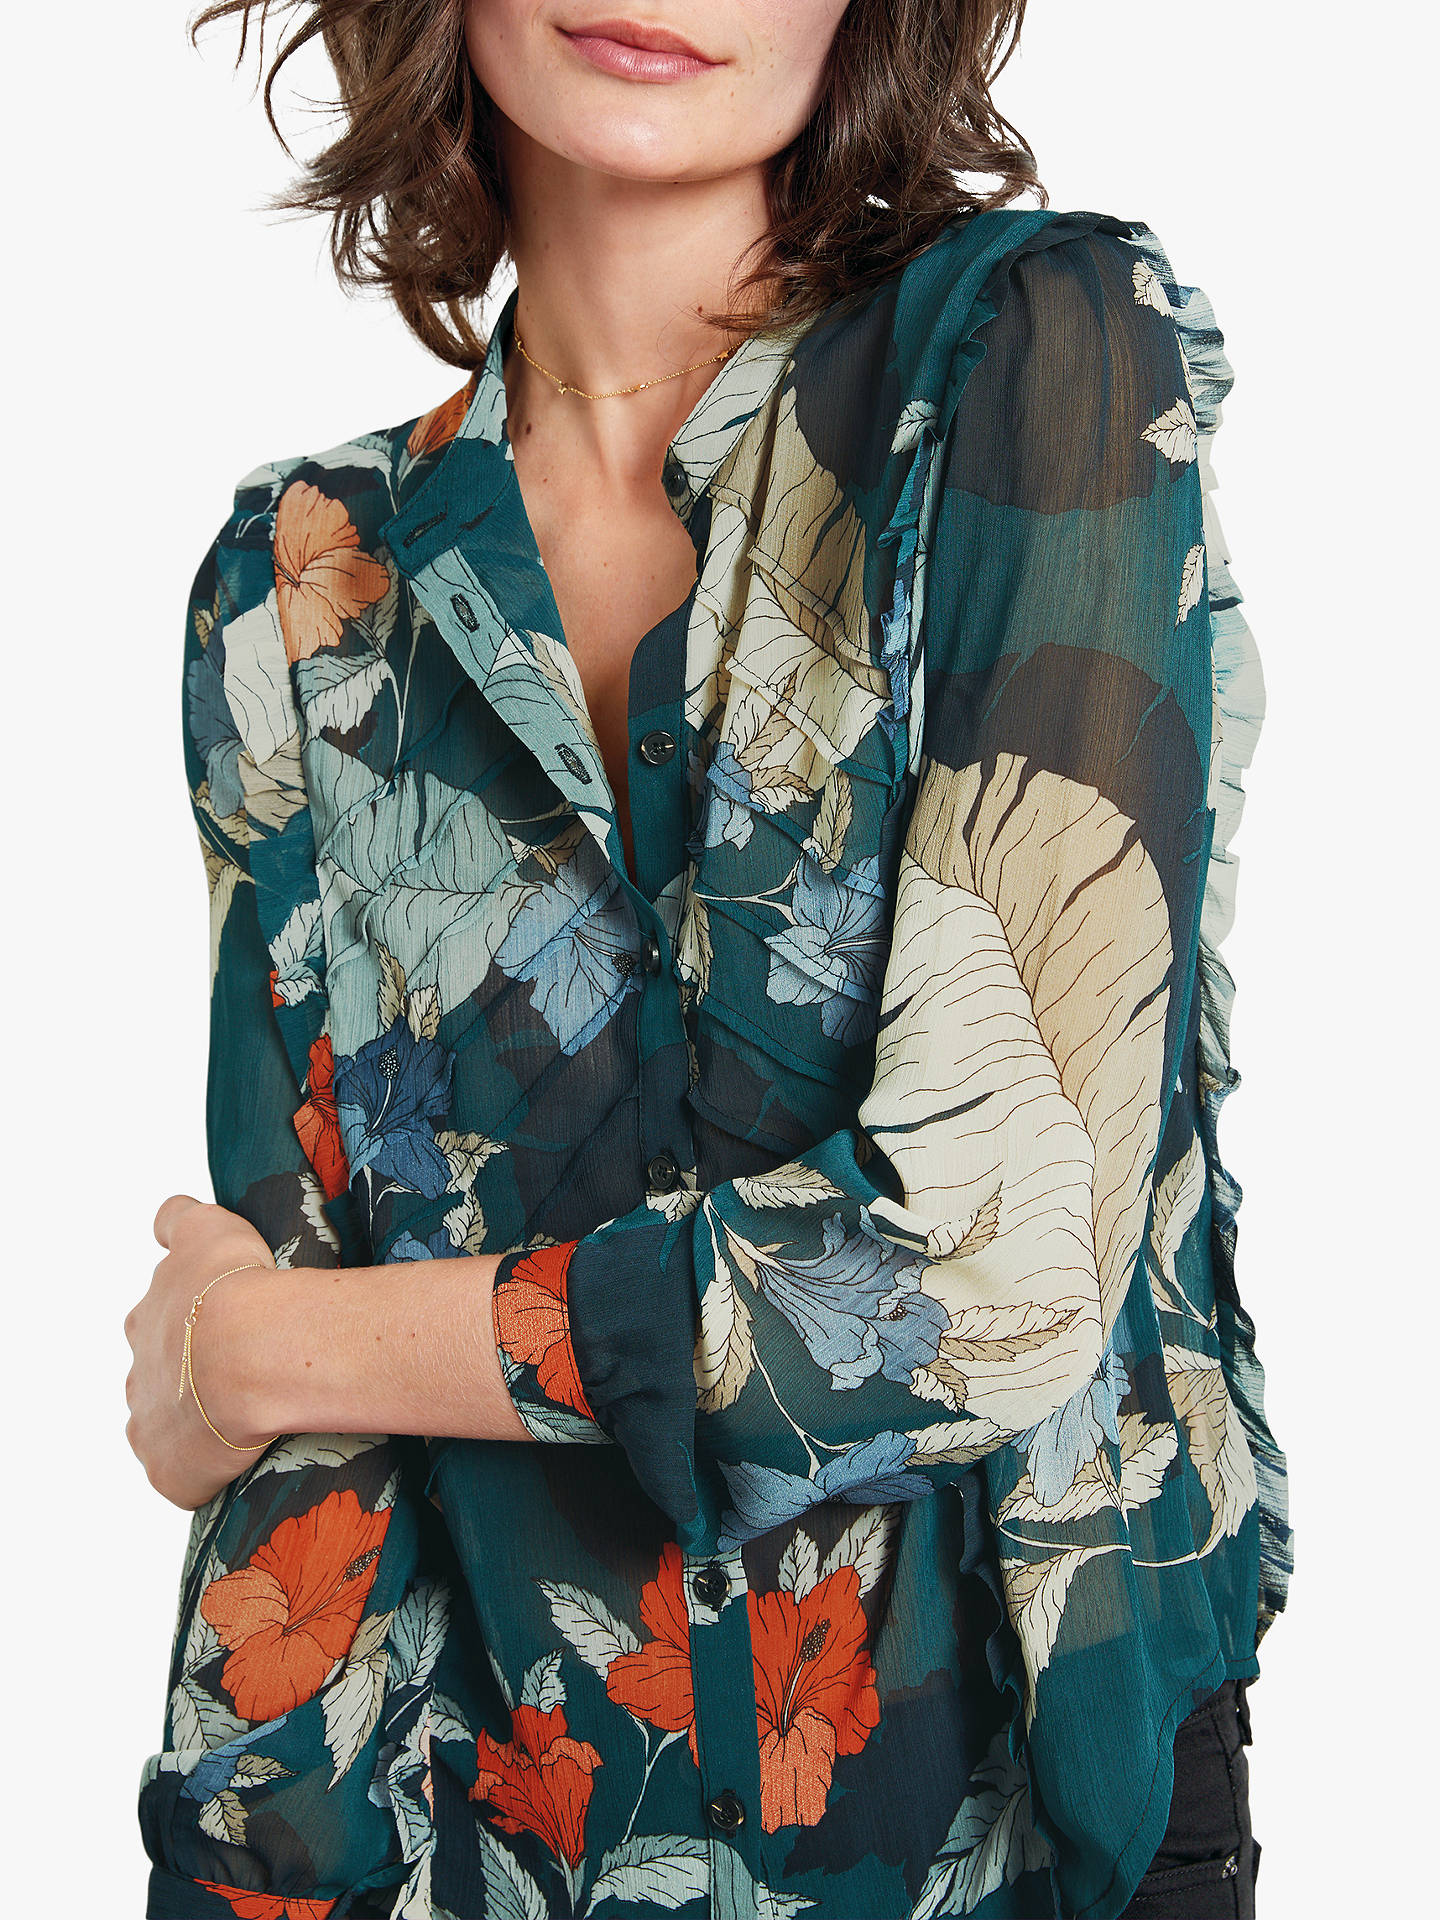 Buyhush Elspeth Ruffle Shirt, Hibiscus Print, 8 Online at johnlewis.com